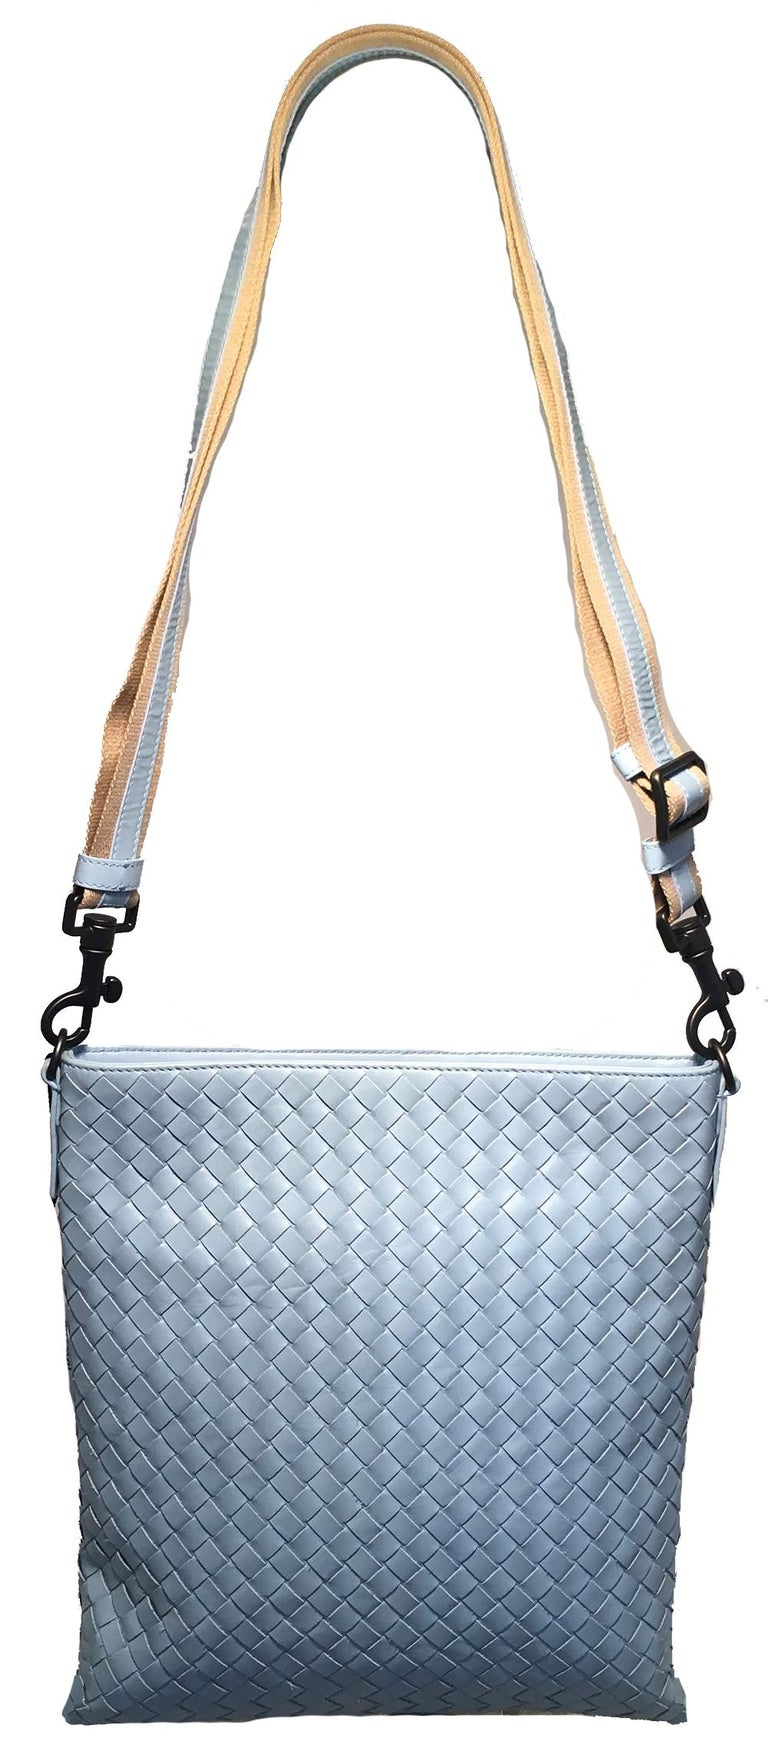 Bottega Veneta Woven Baby Blue Leather Convertible Messenger Shoulder Bag in excellent condition. Woven baby sky blue leather trimmed with a striped tan canvas and blue leather adjustable and removable shoulder strap and gunmetal hardware. Top